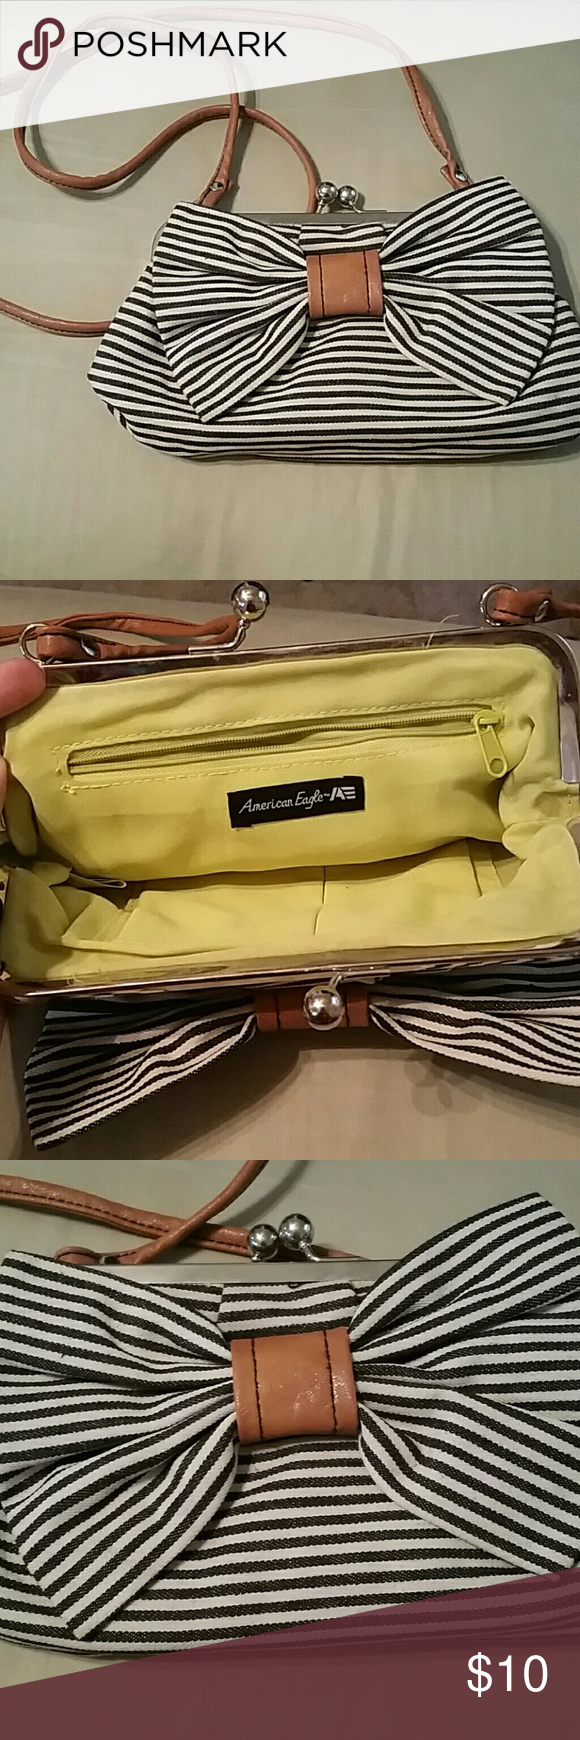 Cross body Bag Who doesn't love a bag with a bow? This blue/white bag looks ADORABLE with a casual jean outfit & the bright lime green on the inside gives a pop of color. American Eagle by Payless Bags Crossbody Bags